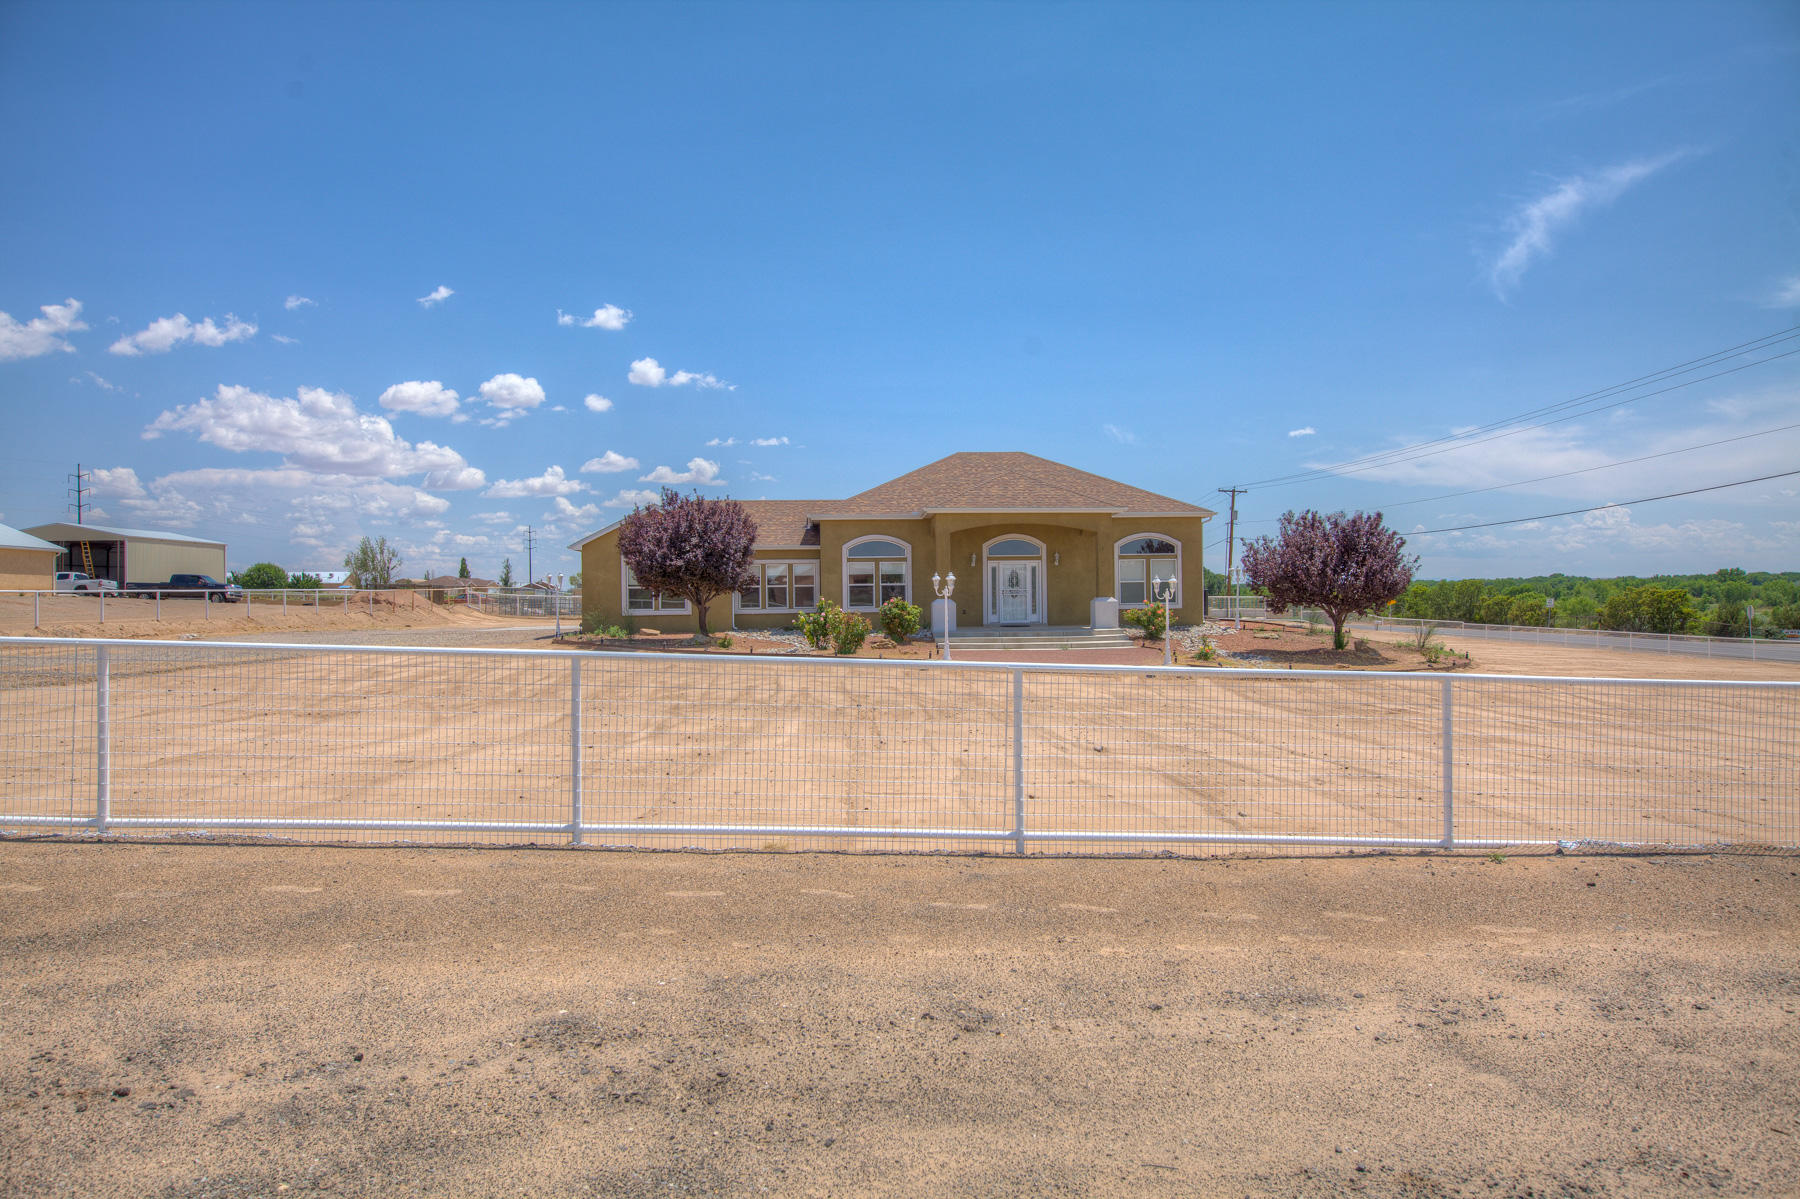 Fantastic home in desirable location on just over an acre room for toys and animals.Enjoy this single story ranch home with open floor plan.3 bedrooms 2 bath 2 car garage. Must see. New stucco, roof, HVAC and gutters.